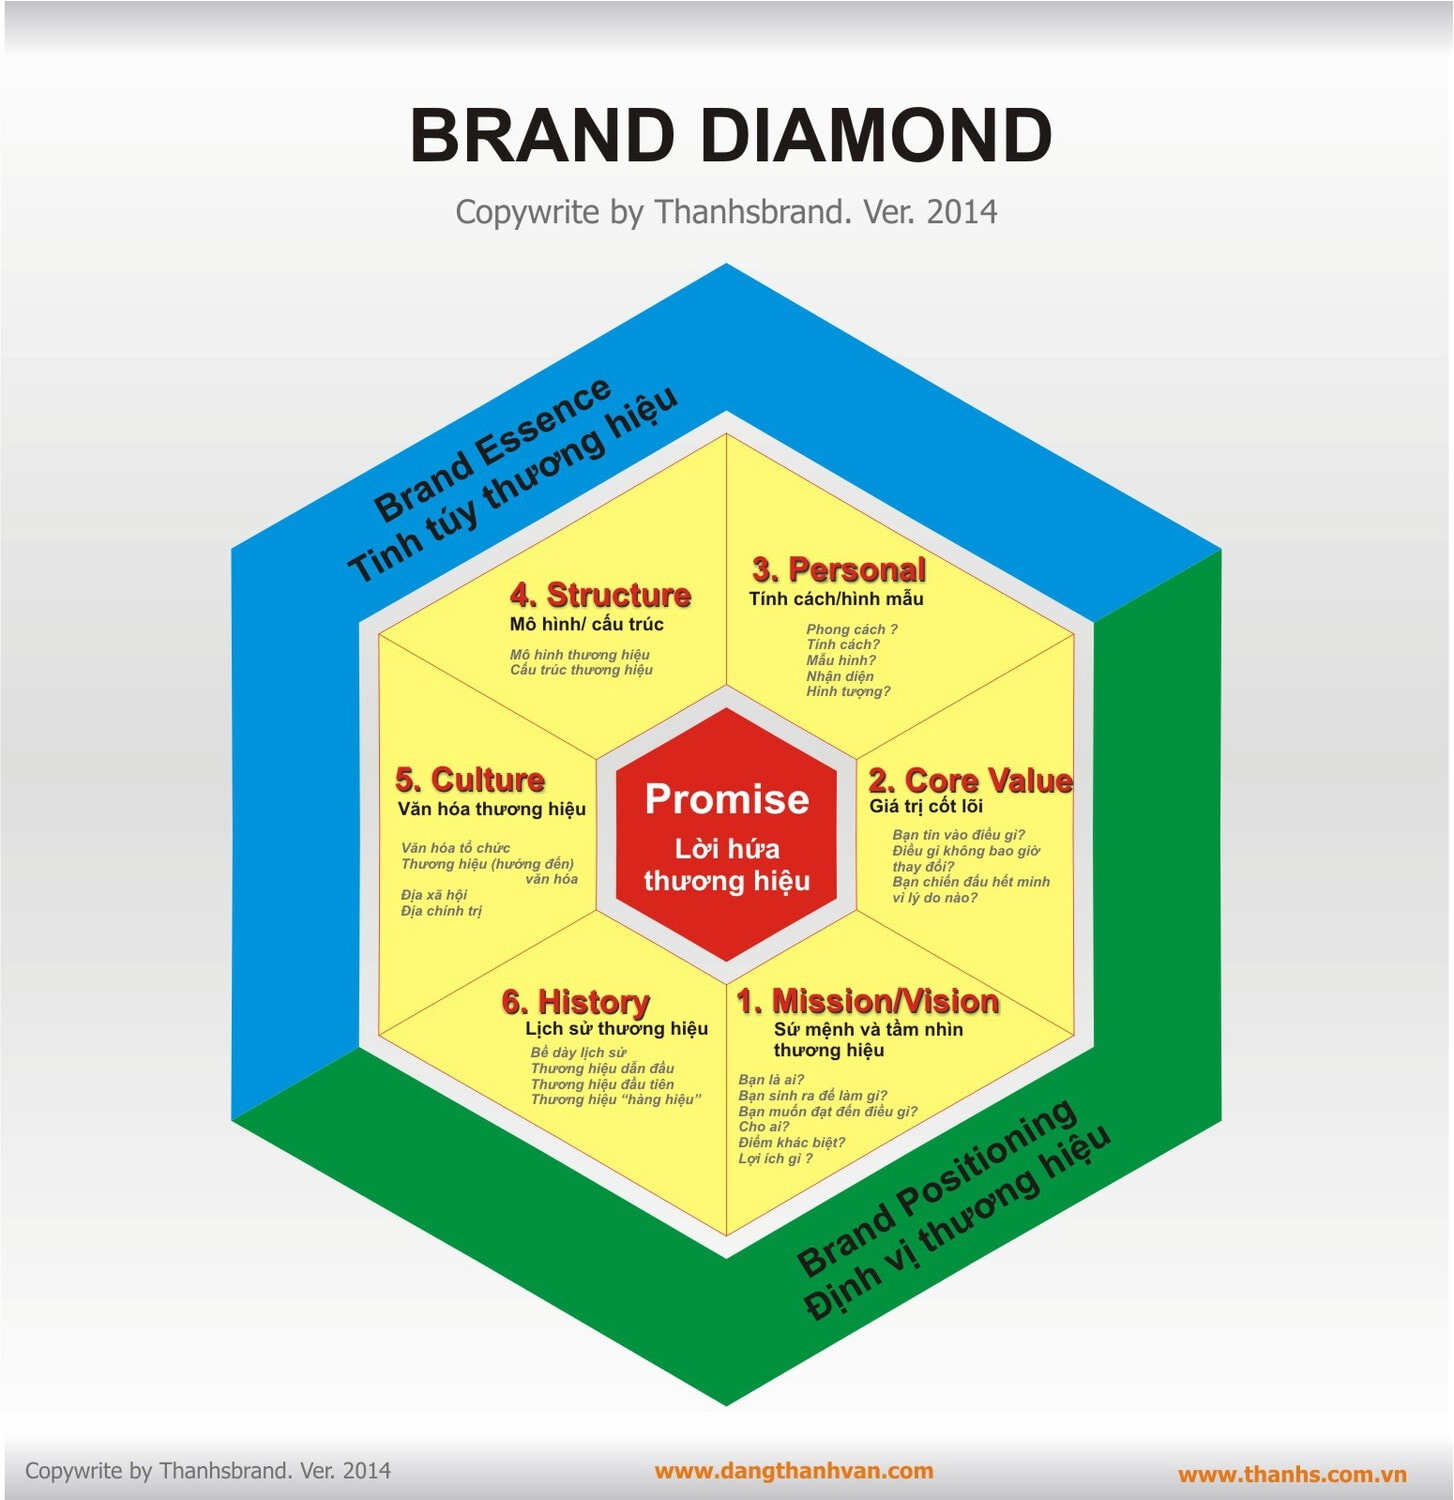 gobrand branding and marketing consultancy brand diamond model brand diamond model